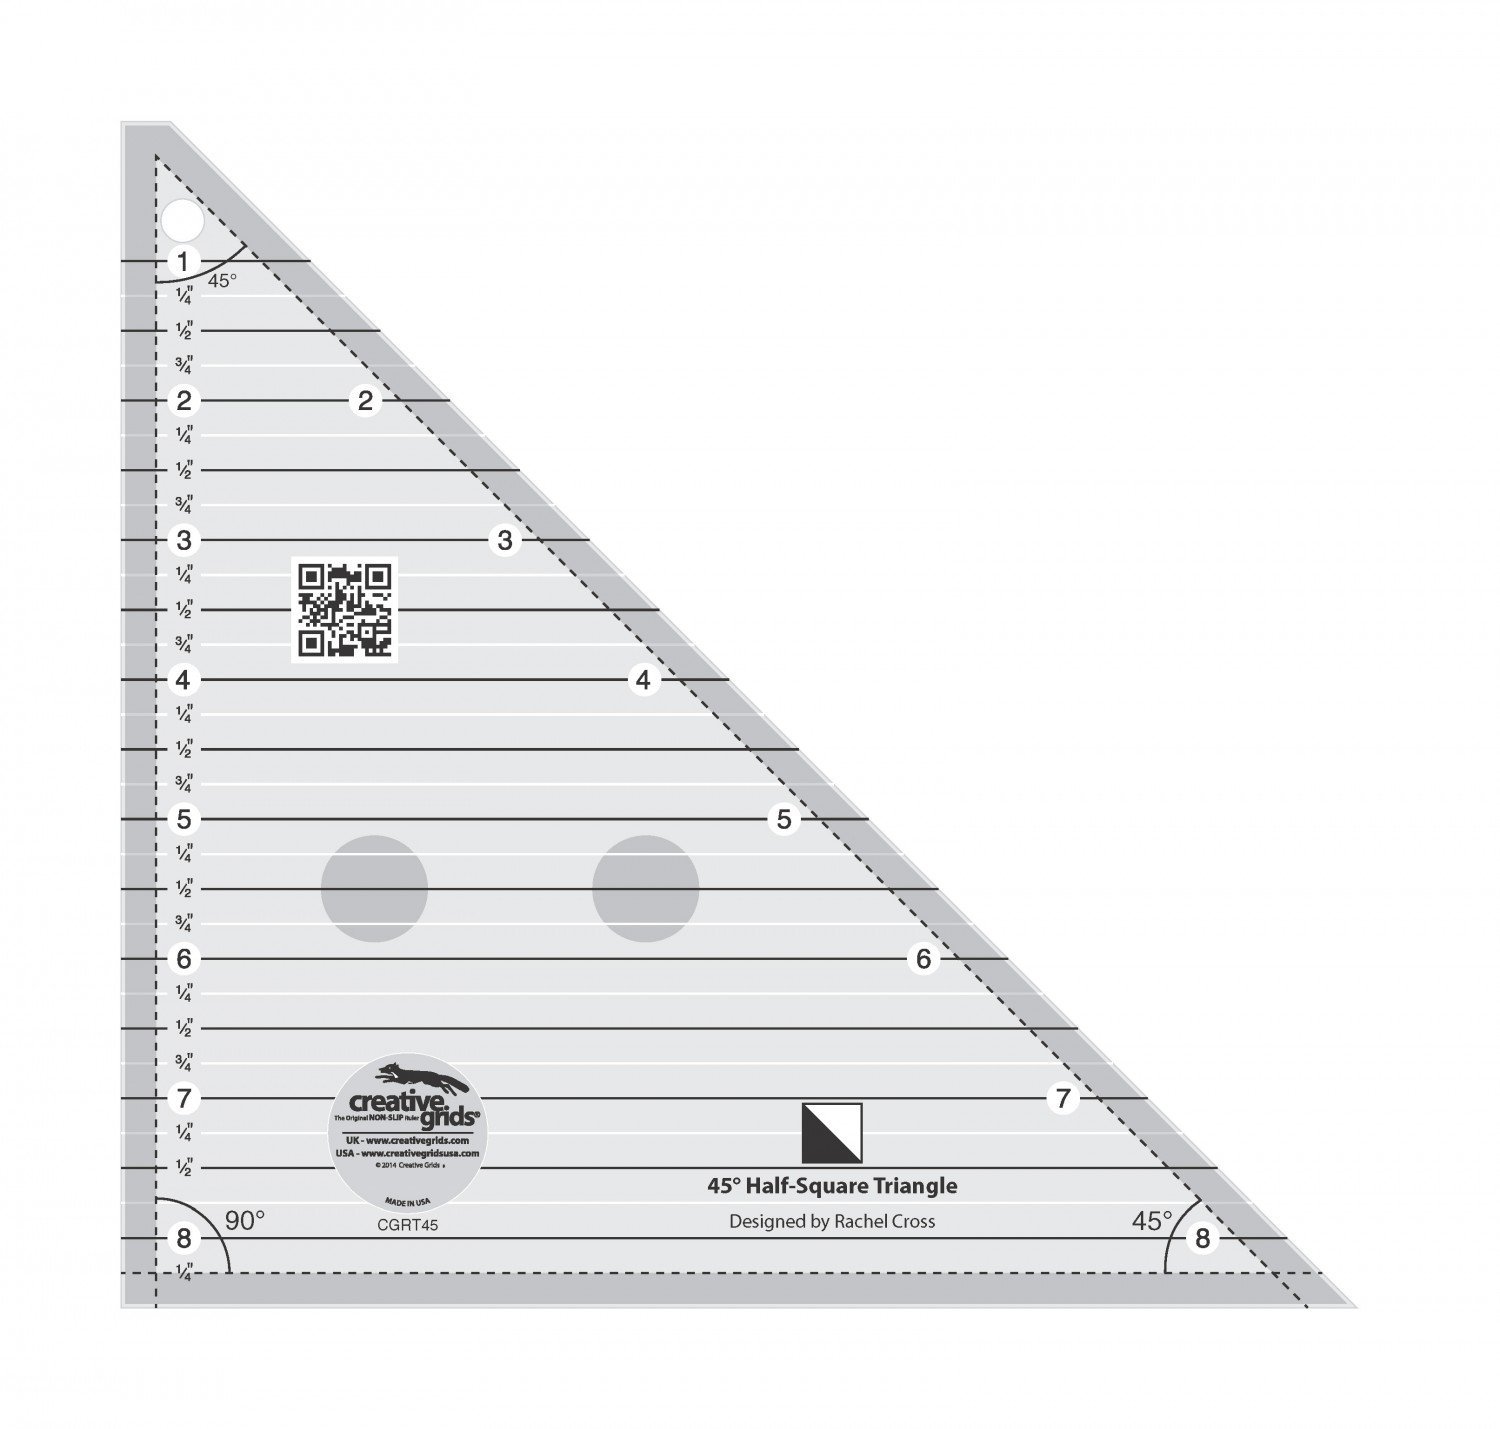 creative grids 45 half-sq triangle